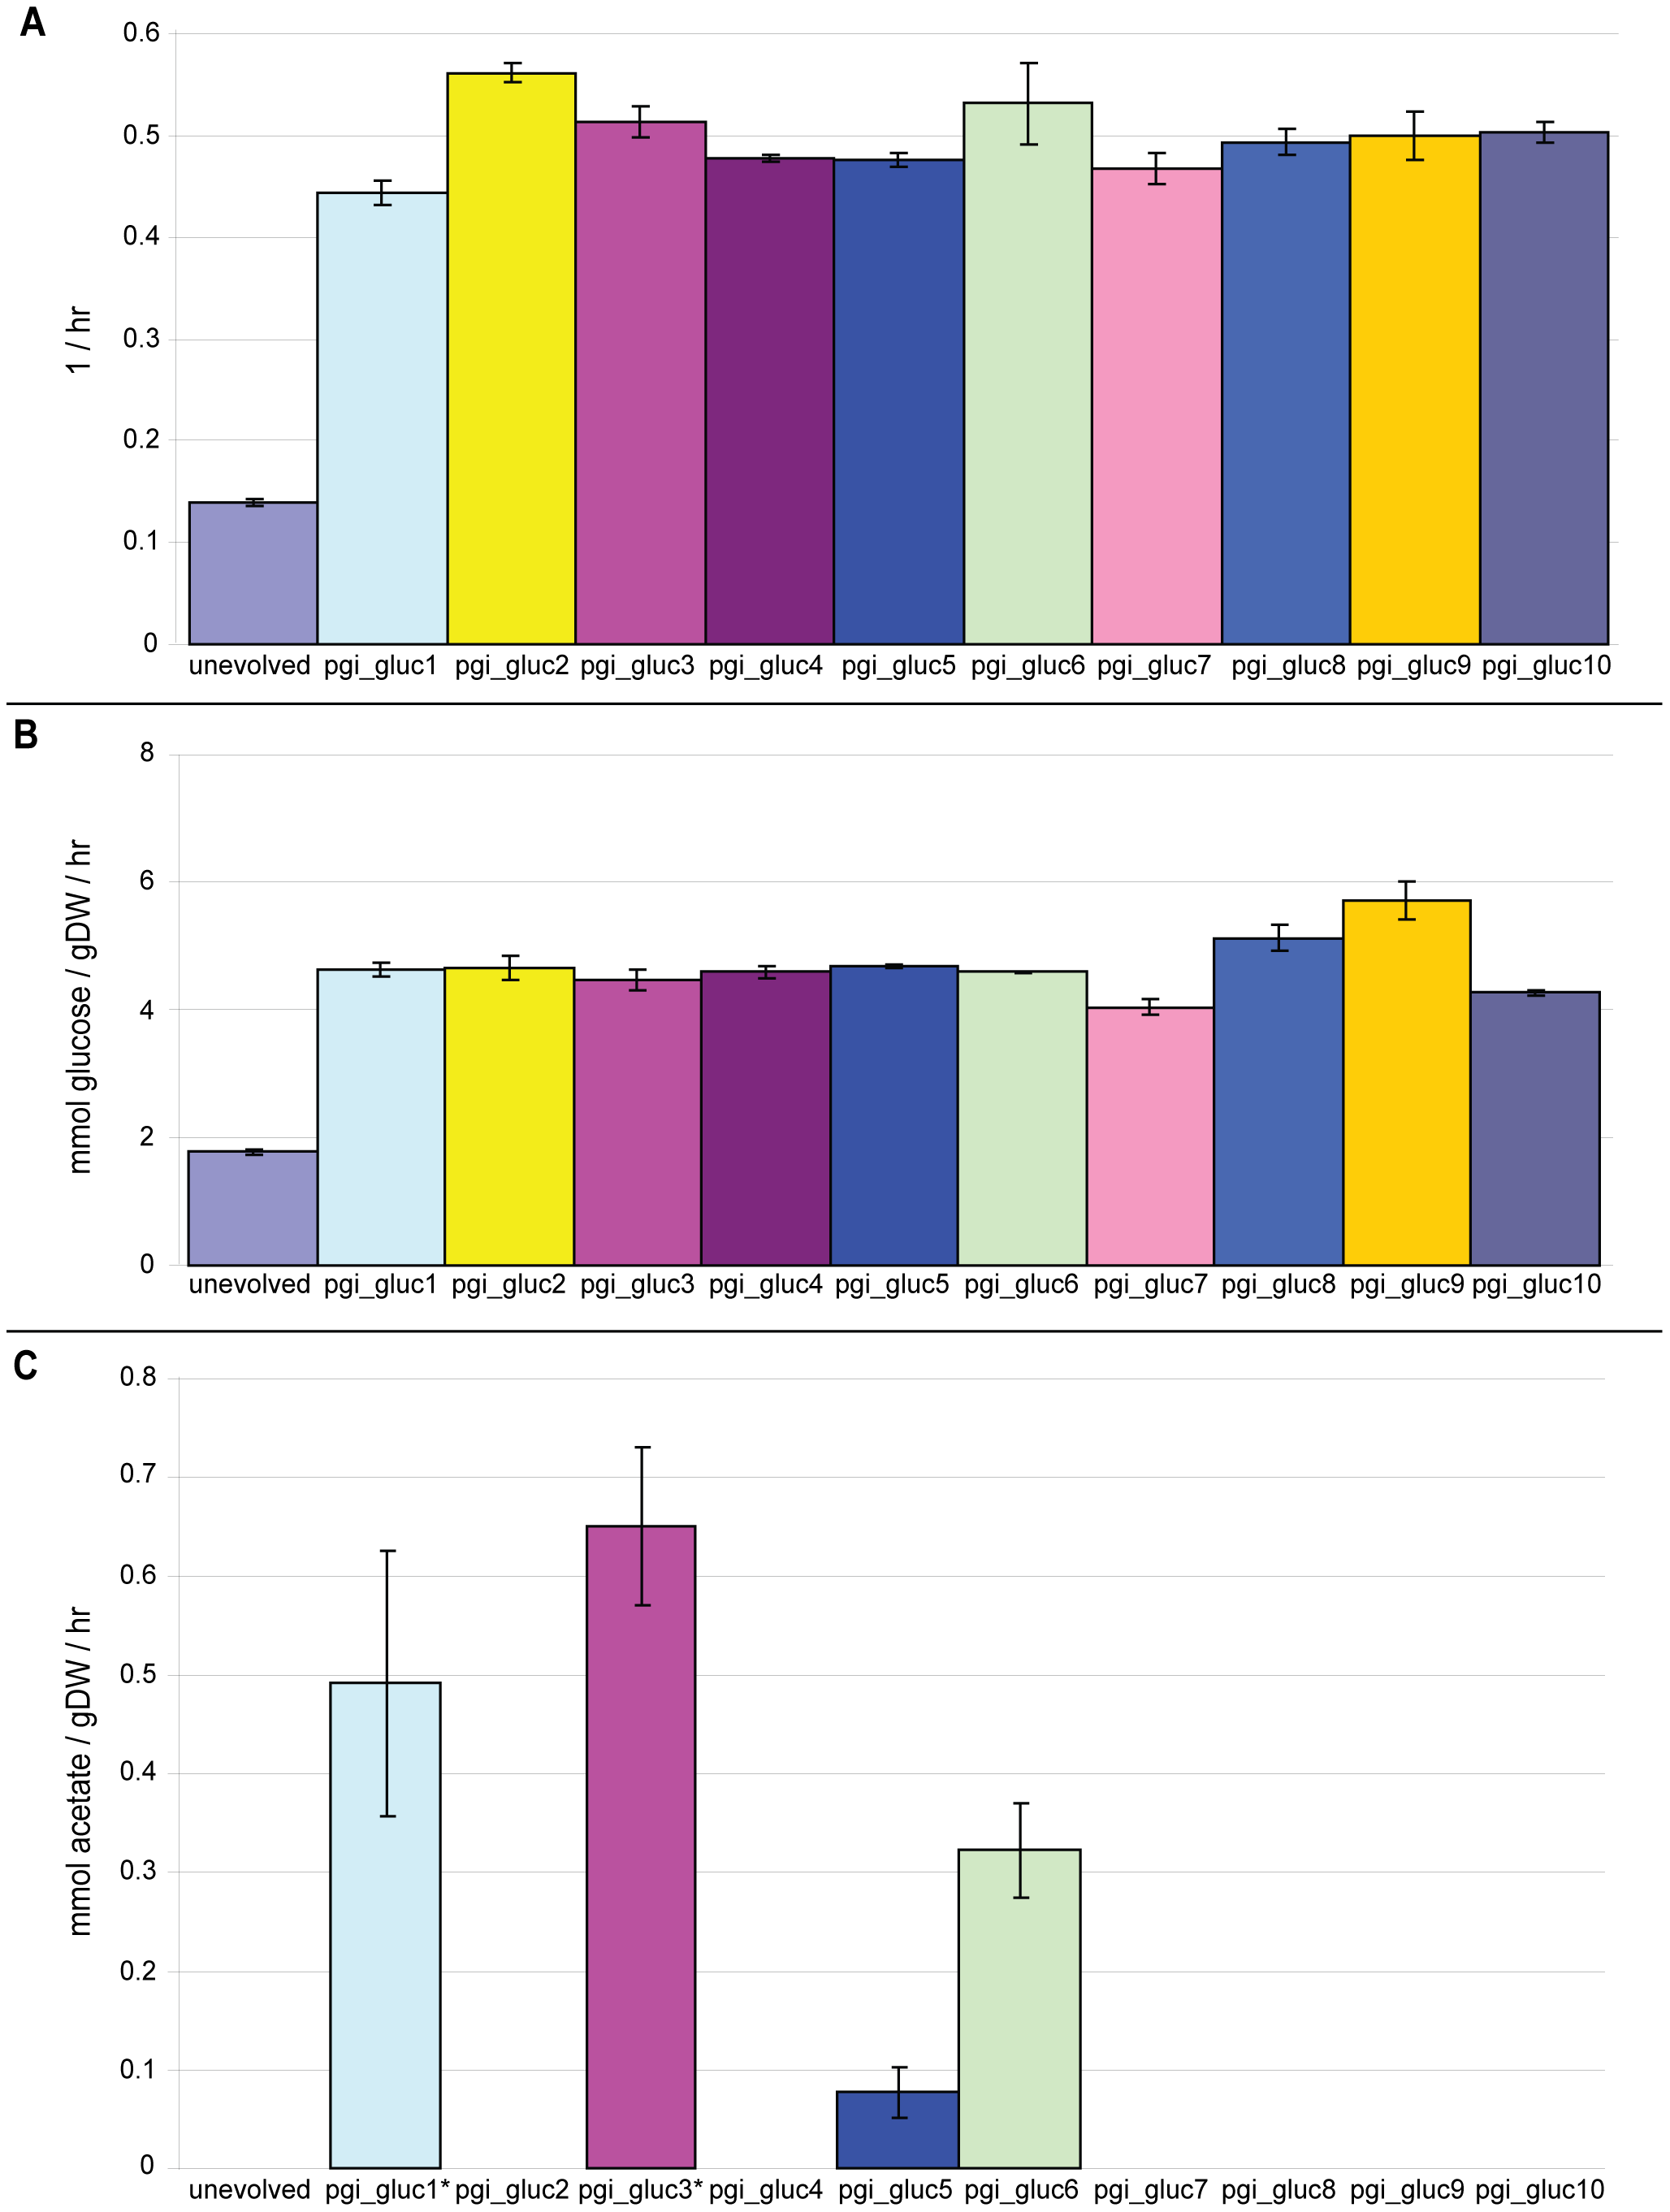 Growth rates, glucose uptake rates, and acetate secretion rates for unevolved and all evolved strains.